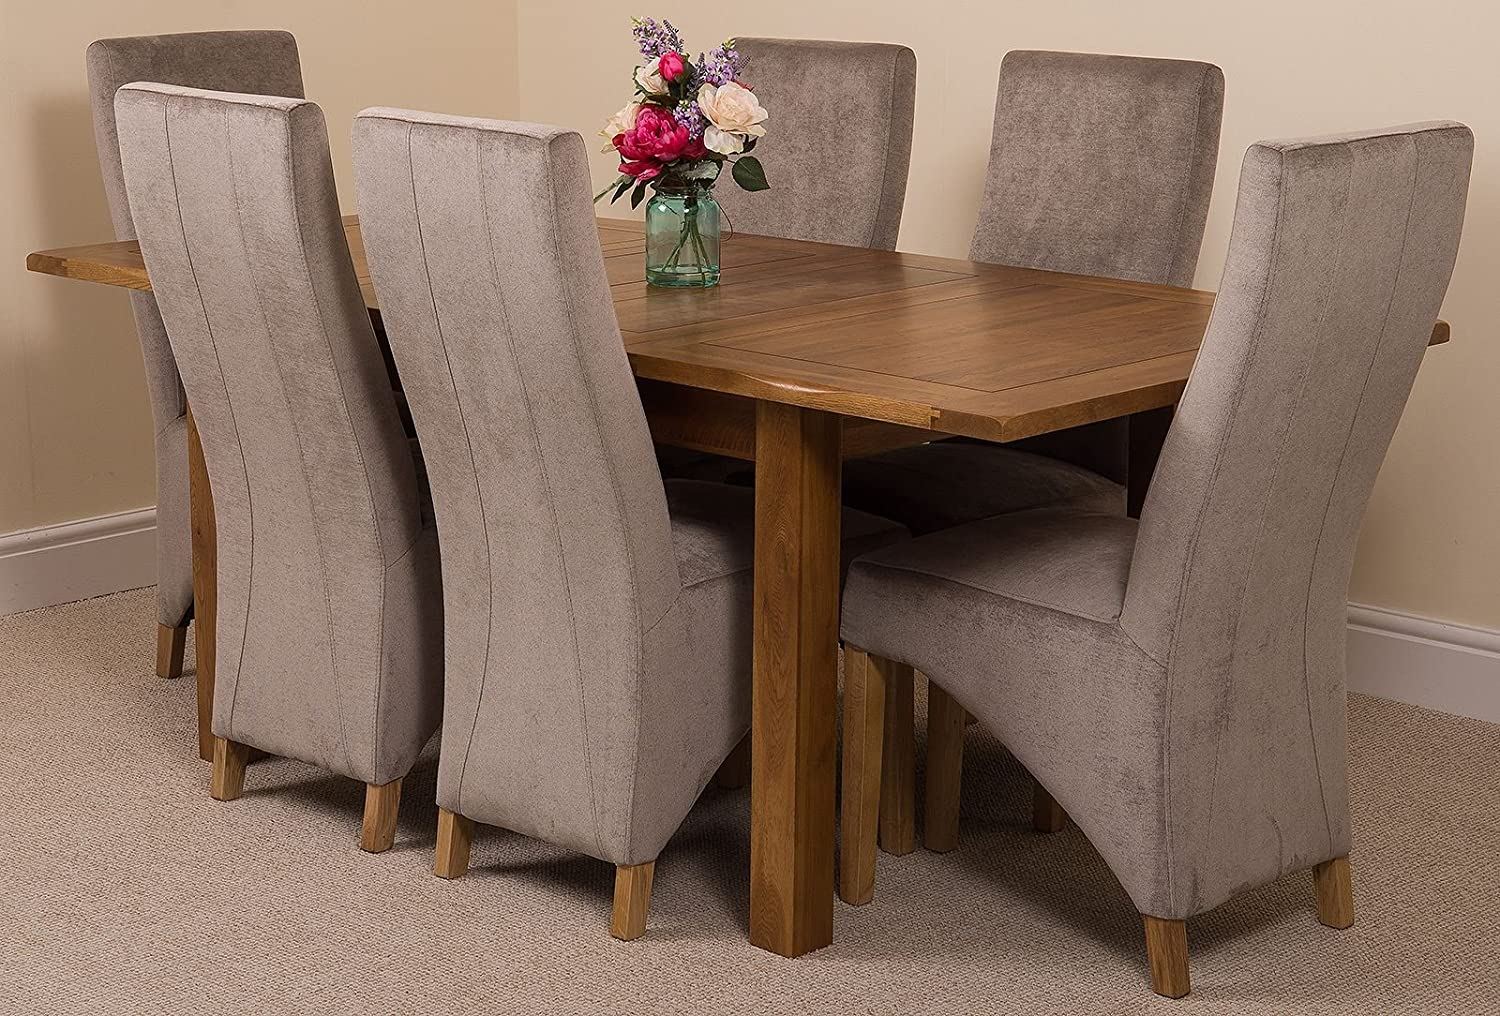 Modern Furniture Direct Cotswold Rustic 132cm 198 Cm Dark Oak Extending Dining Table And 6 Chairs Dining Set With Lola Grey Fabric Chairs Amazon Co Uk Kitchen Home